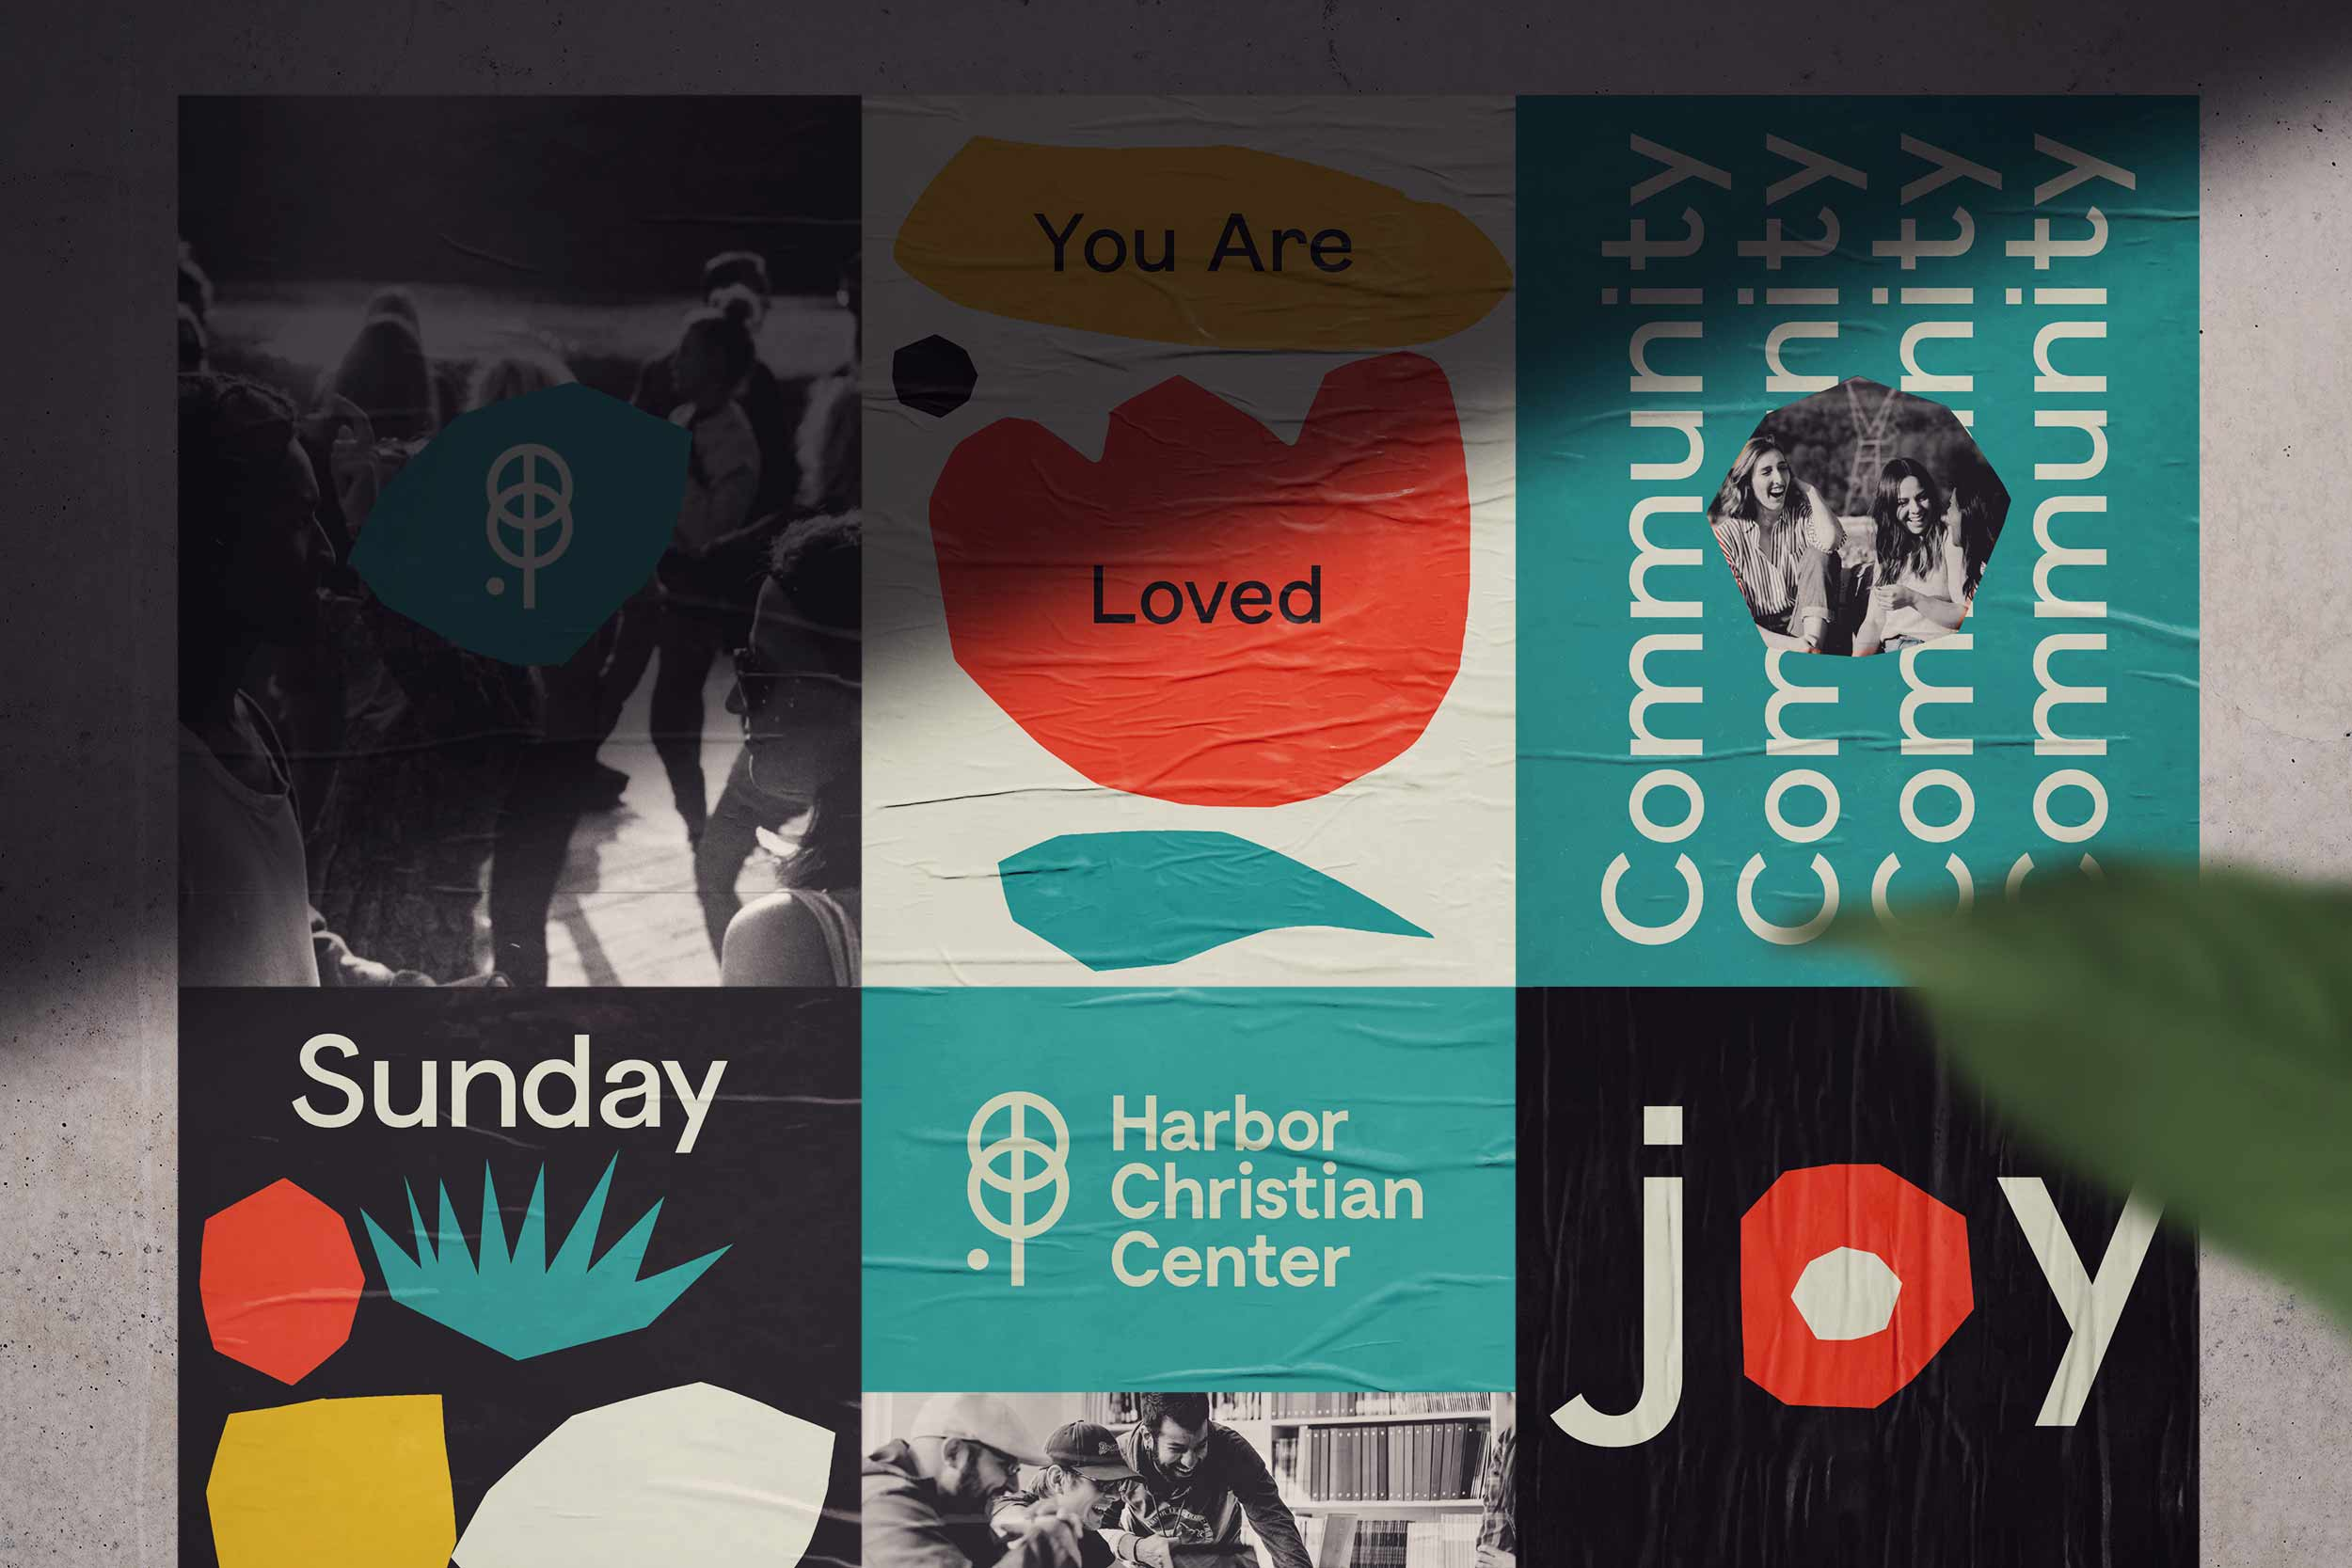 siotes-branding-seattle-tacoma-design-studio-branding-harbor-christian-center-church-3